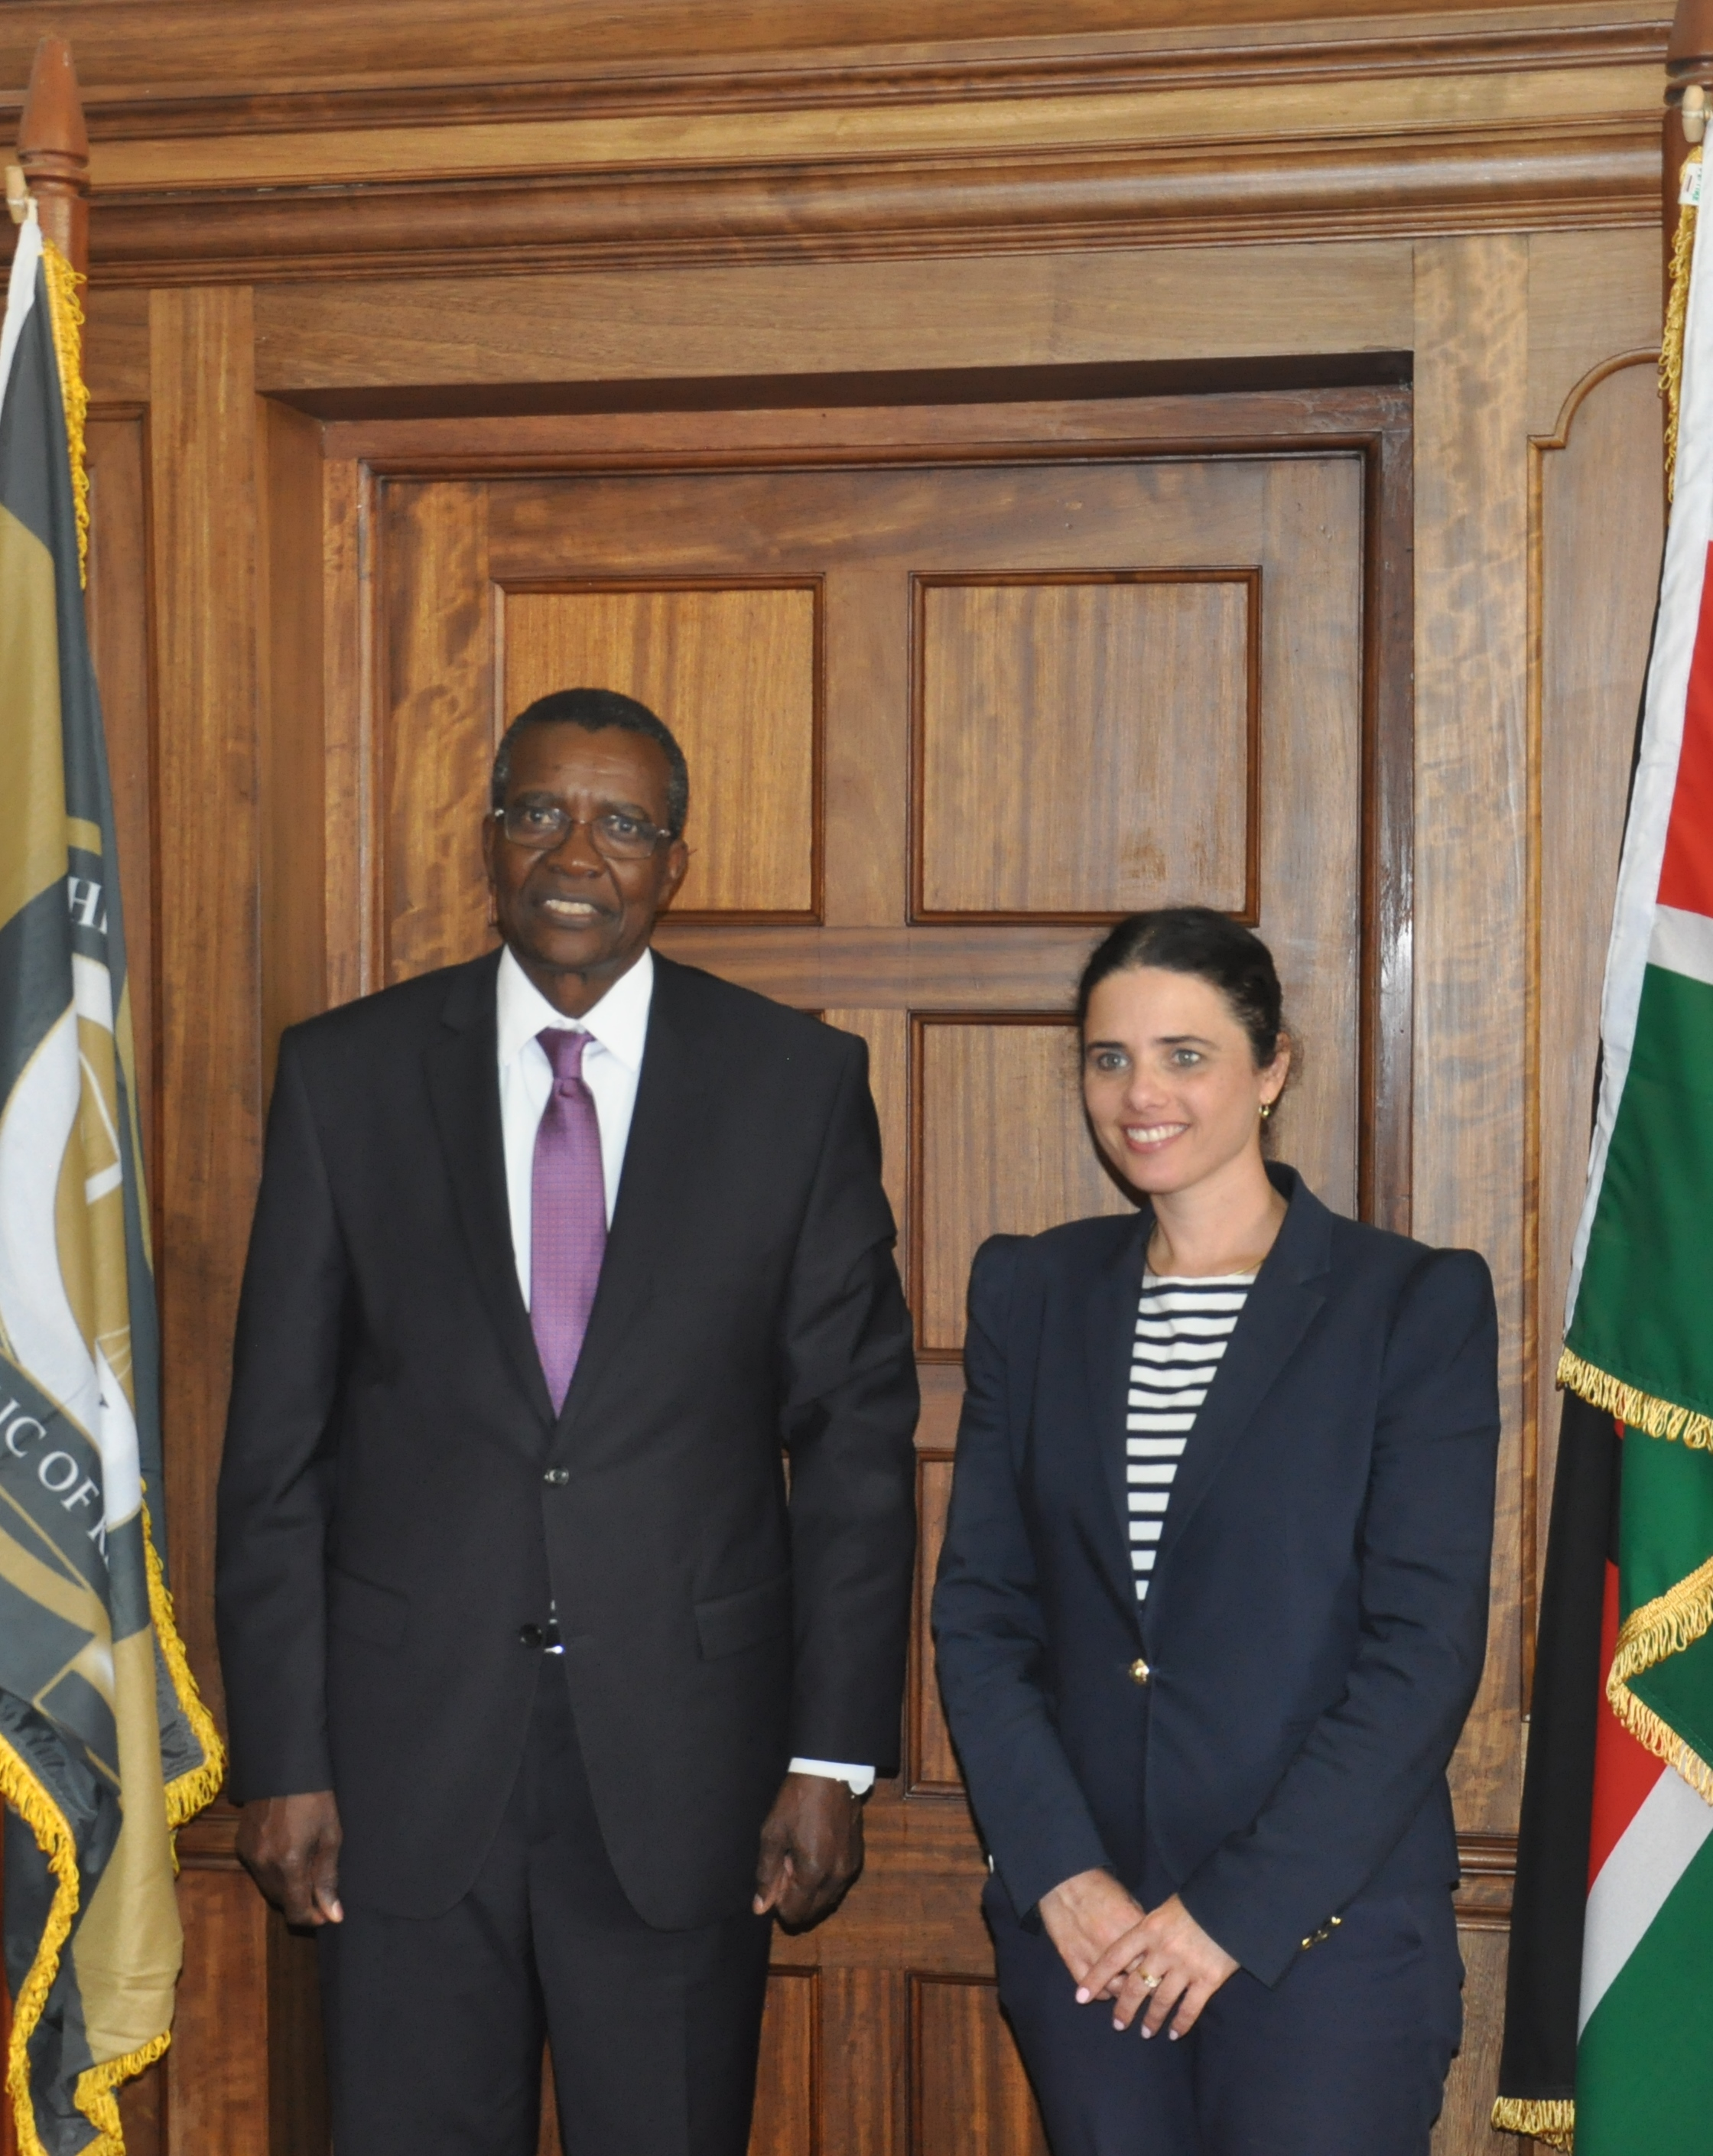 The Judiciary Kenya    @Kenyajudiciary  4s4 seconds ago More CJ David Maraga with member of Knesset Israel Parliament and Minister of Justice of the State of Israel Ayelet Shaked when she paid courtesy call on the CJ at Supreme Court toda